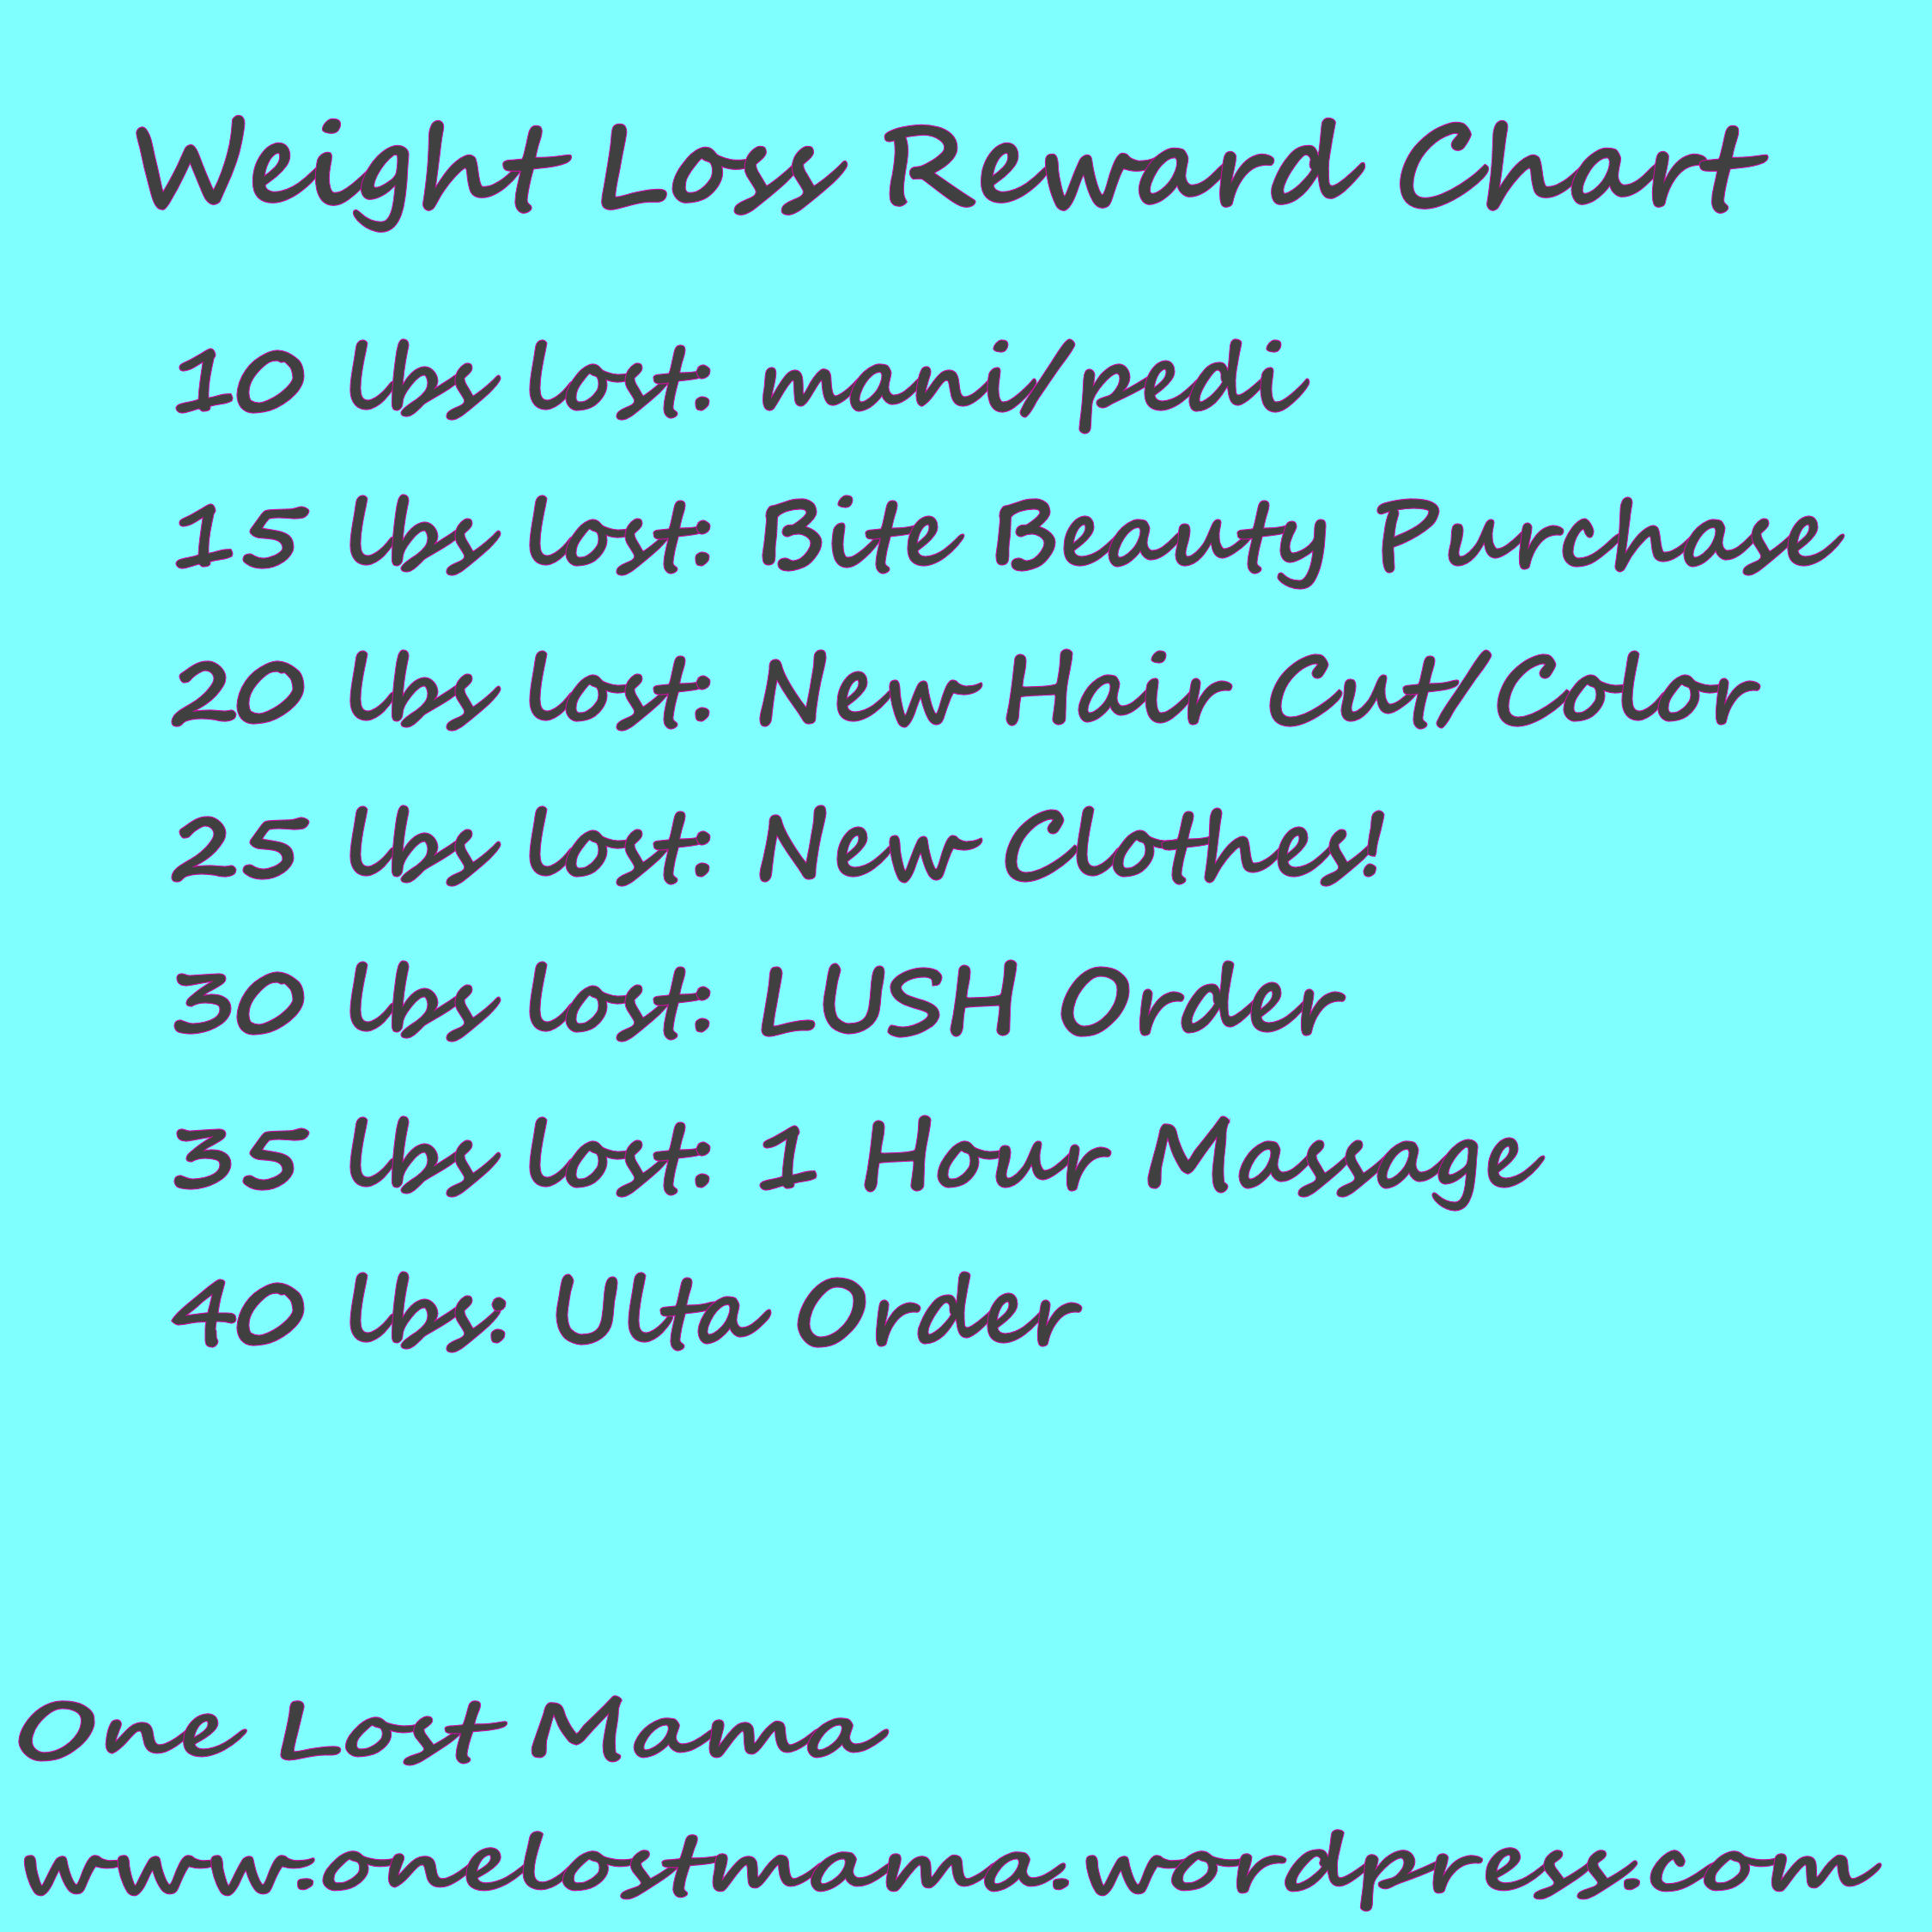 Weight loss onelostmama reward chart does anyone have any tips for weight loss if so let me have them in the comment section below nvjuhfo Choice Image